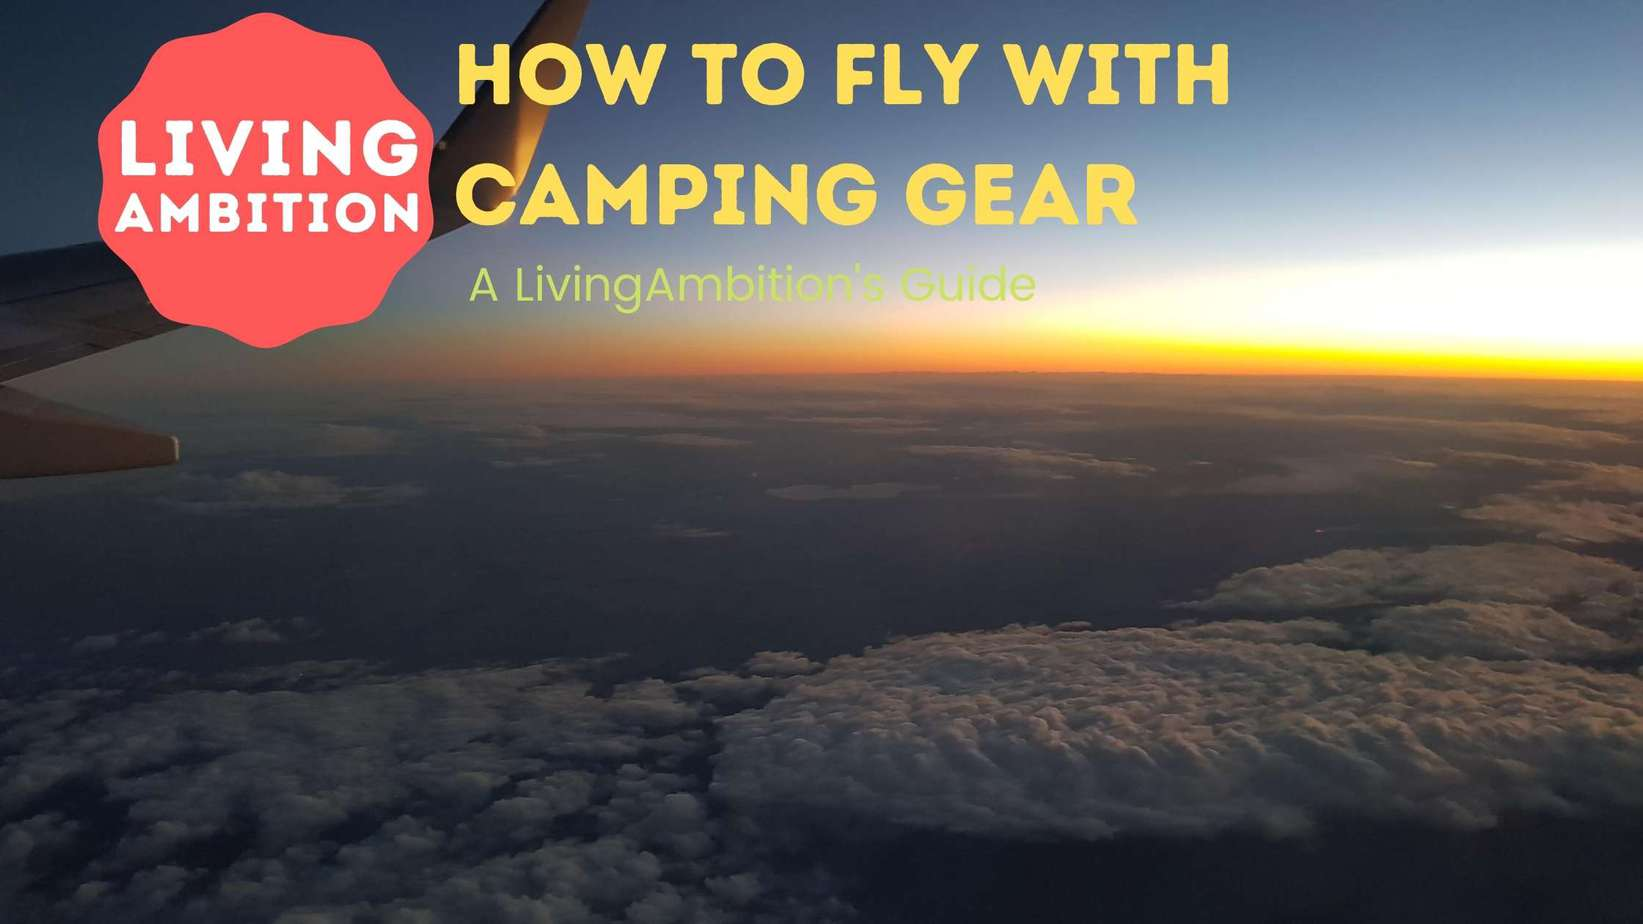 How To Fly With Camping Gear